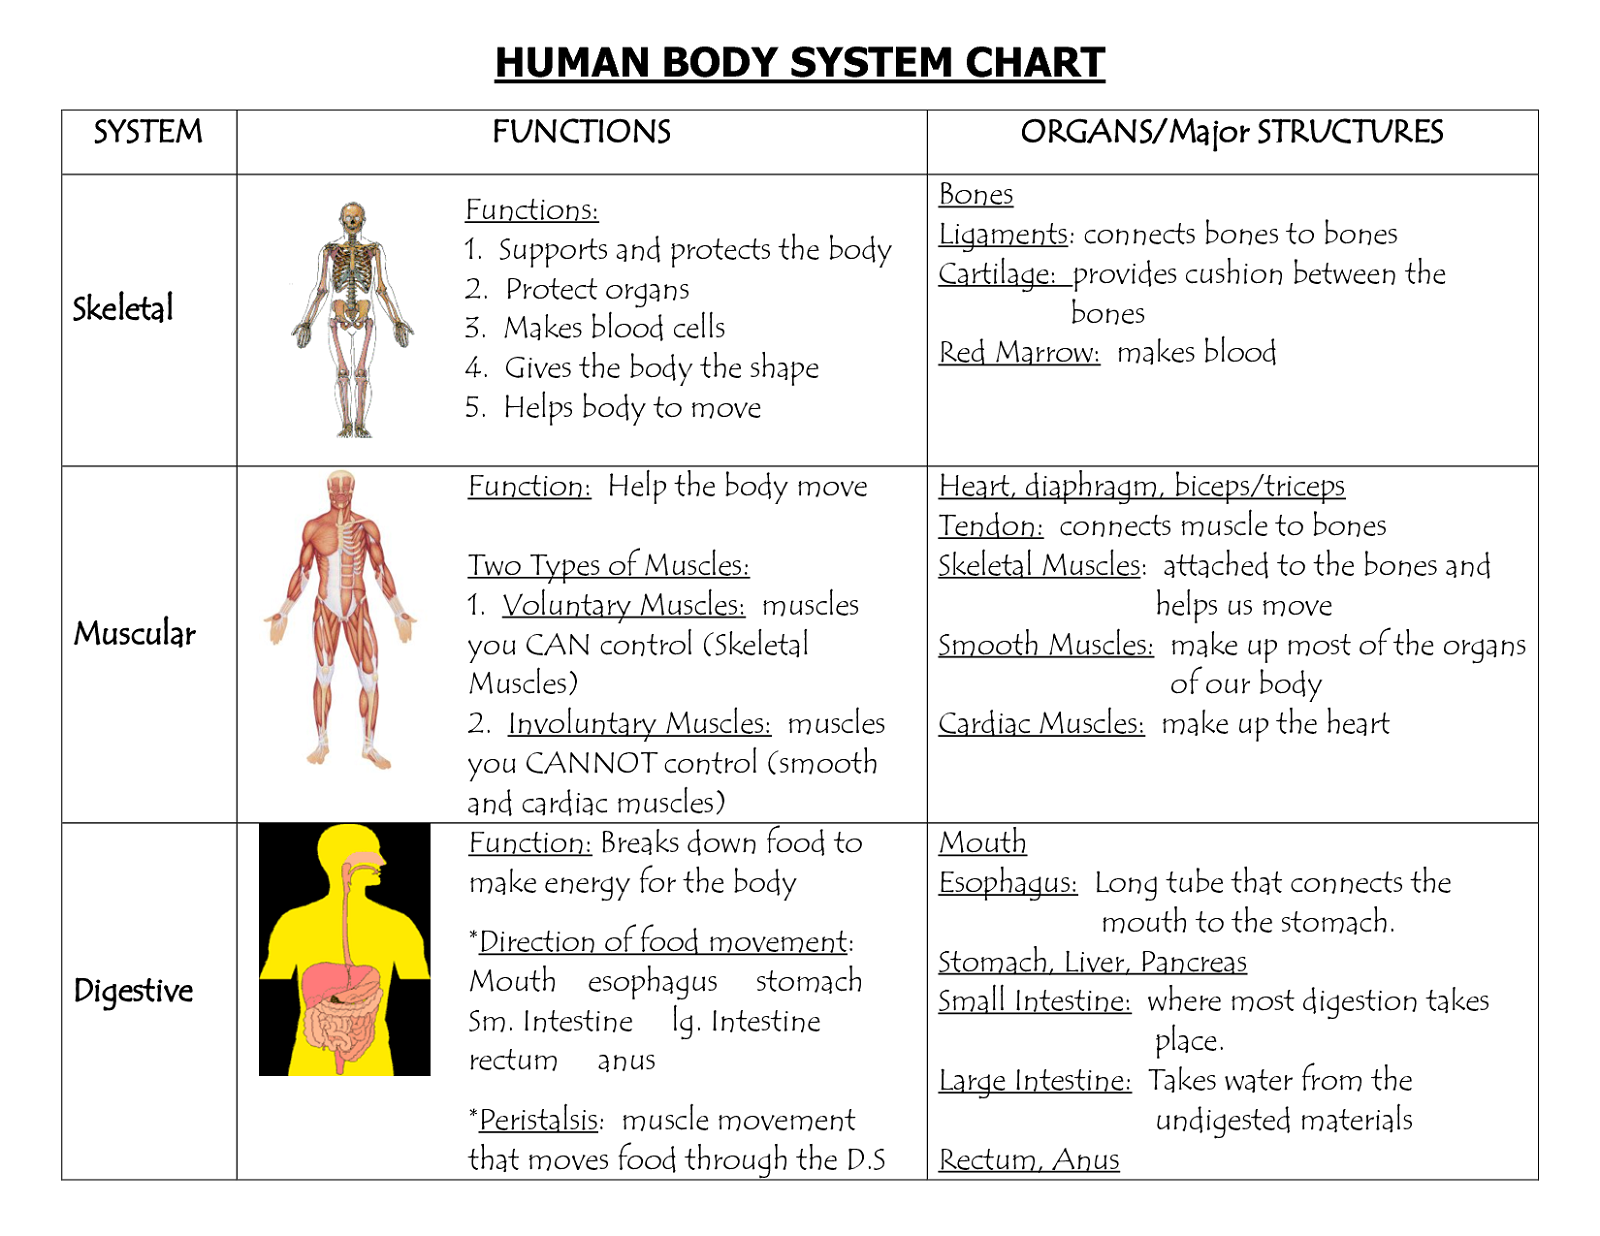 Human Body System Chart Organs Diagram And Their Functions